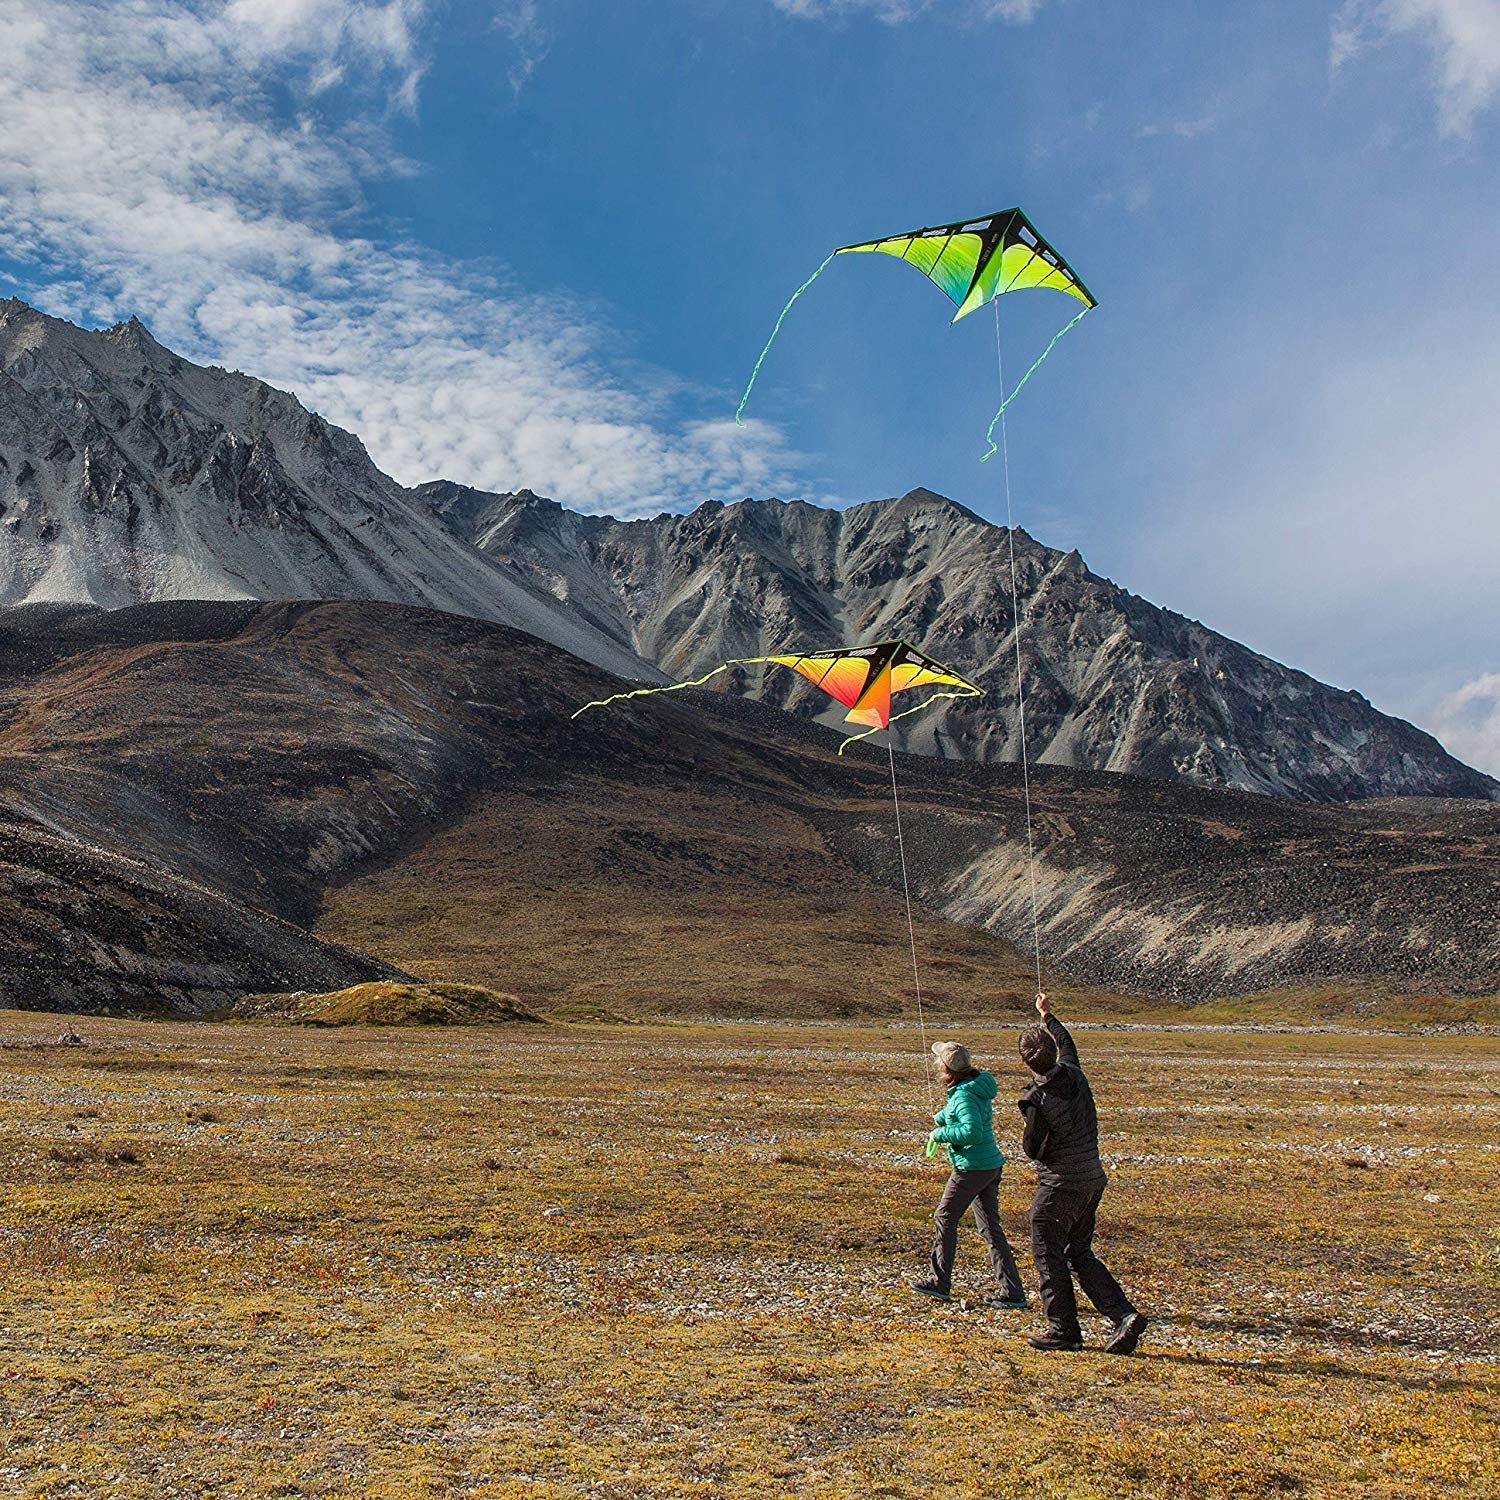 Prism Kite Technology Zenith 7 Infrared Single Line Kite, Ready to Fly with line, Winder and Travel Sleeve by Prism Kite Technology (Image #4)